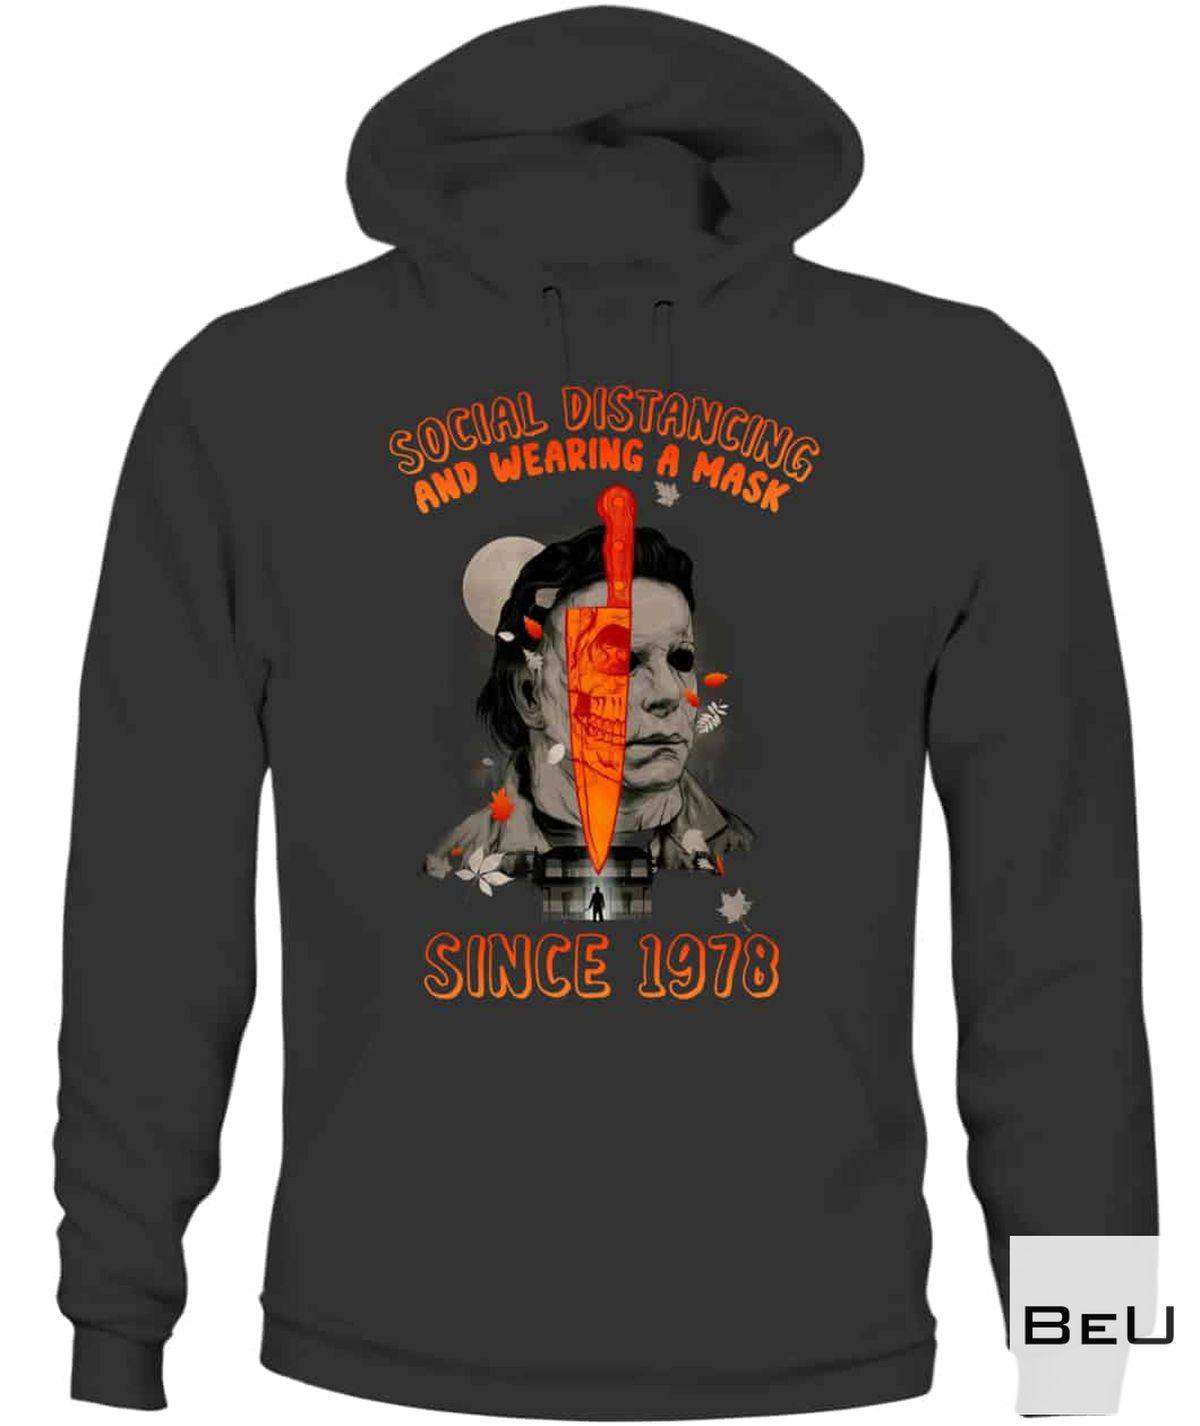 Top Selling Michael Myers Social Distancing And Wearing A Mask In Public Since 1978 Shirt